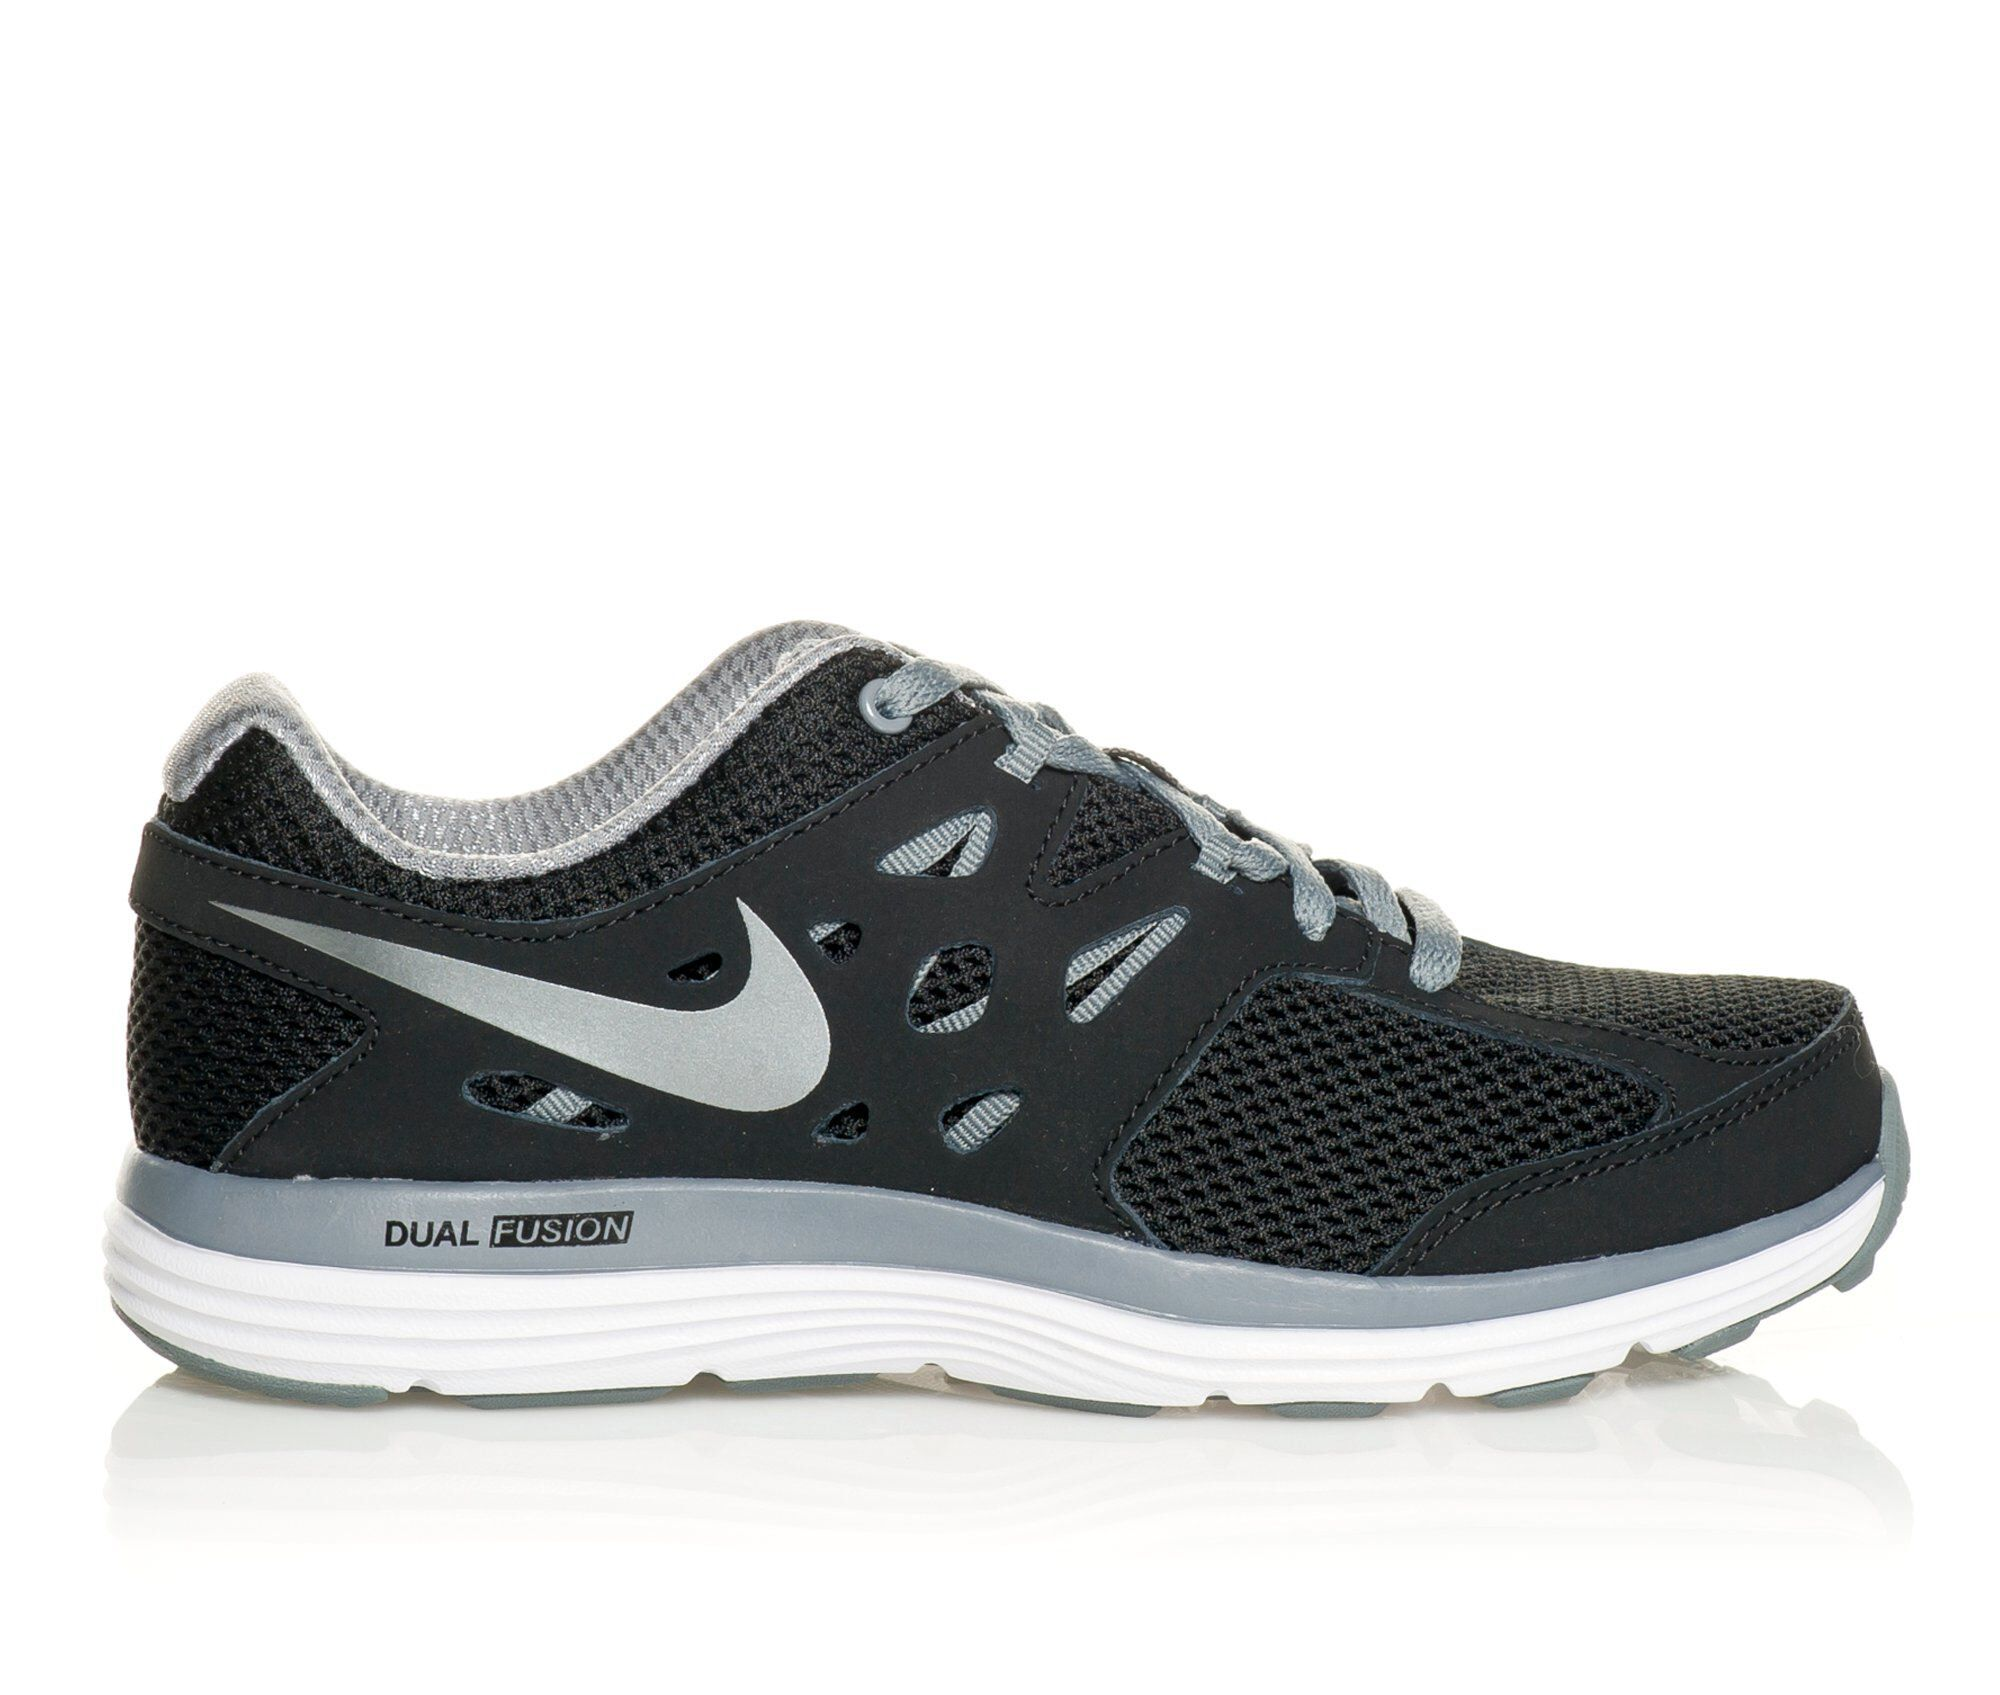 Images Boys Nike Dual Fusion Lite 357 Running Shoes